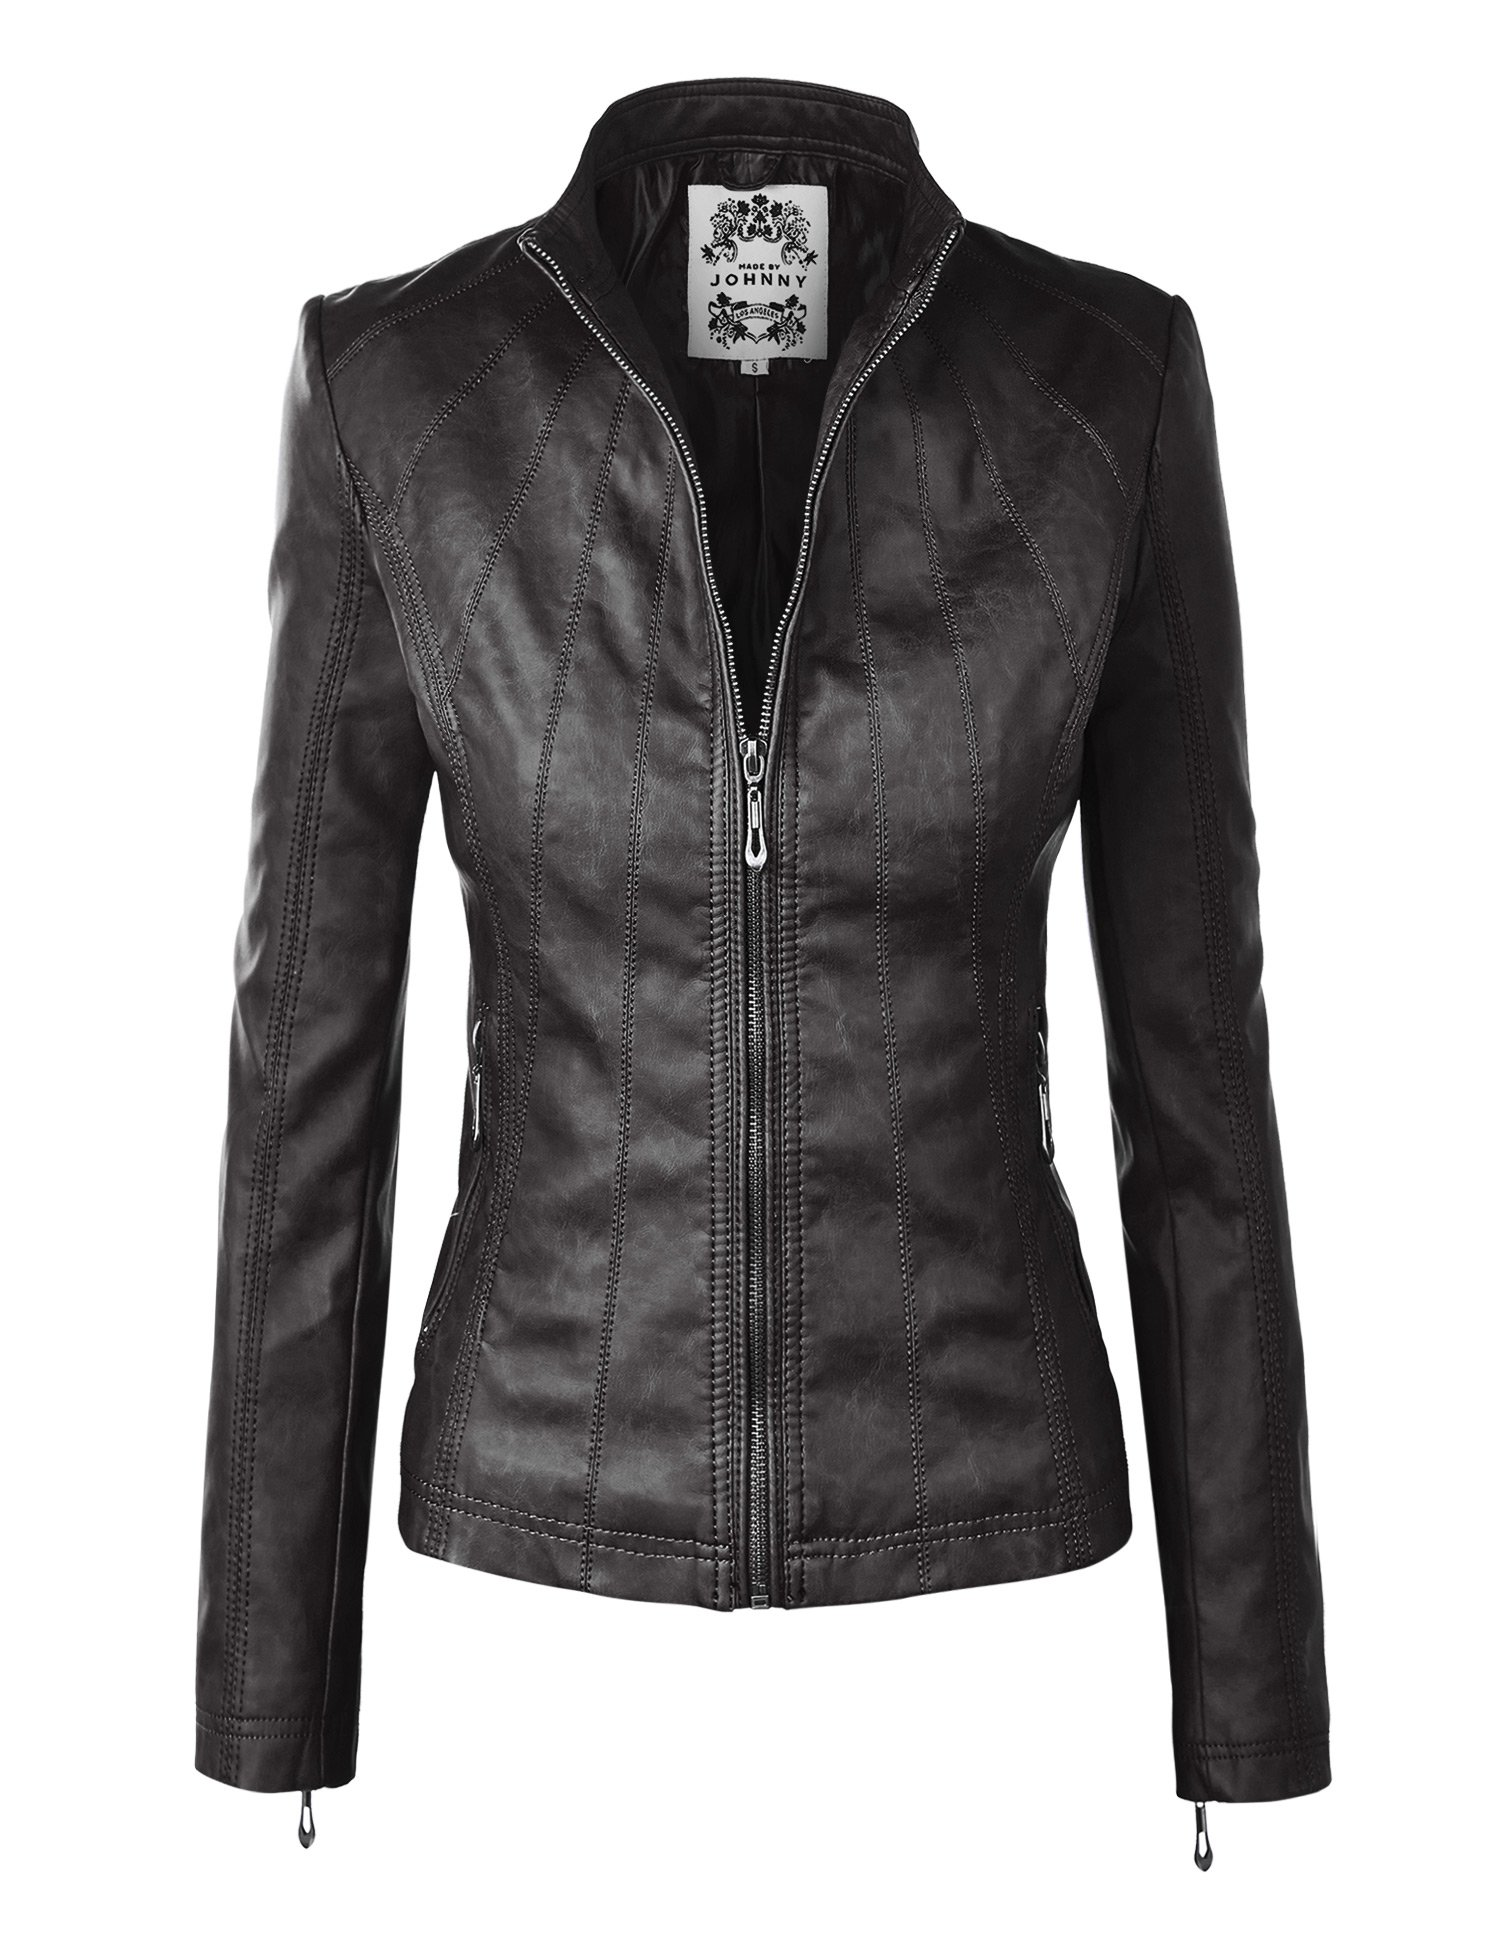 Made By Johnny MBJ WJC877 Womens Panelled Faux Leather Moto Jacket S Black